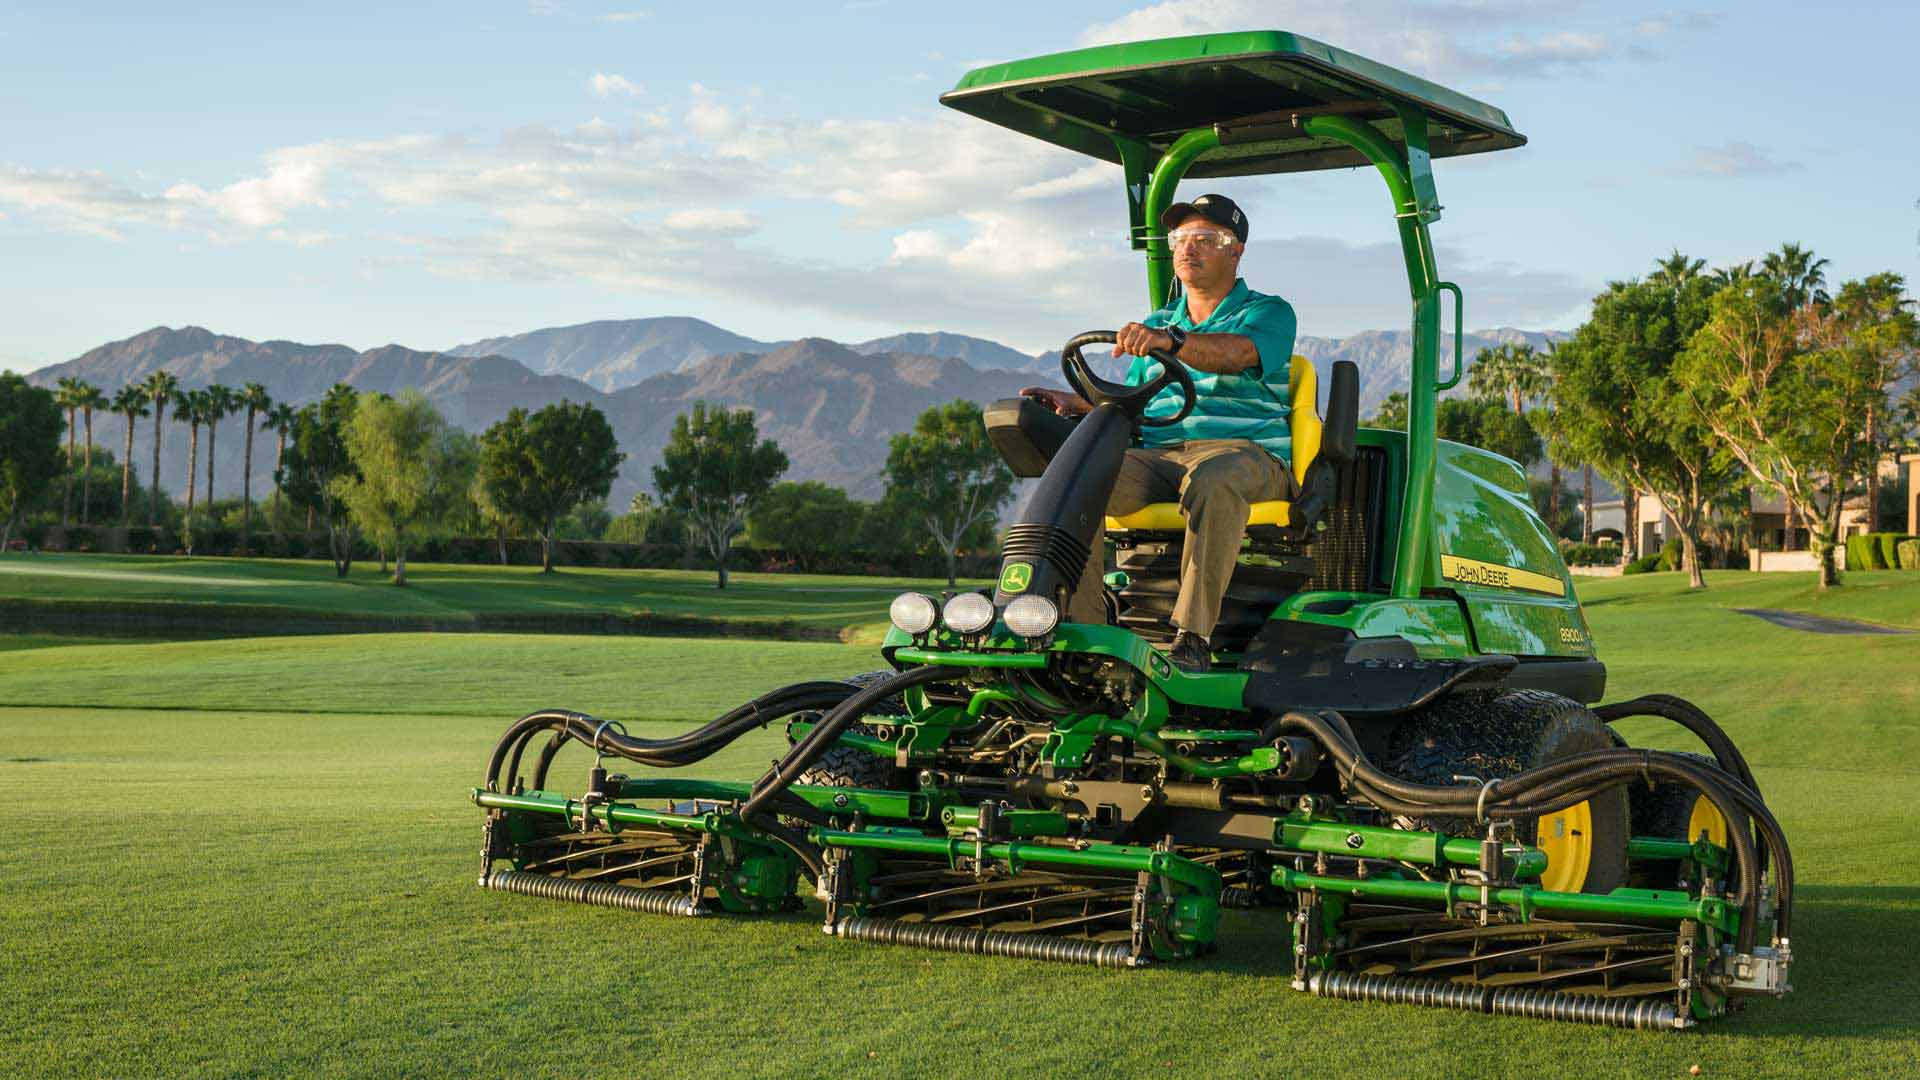 image of fairway mower on golf course